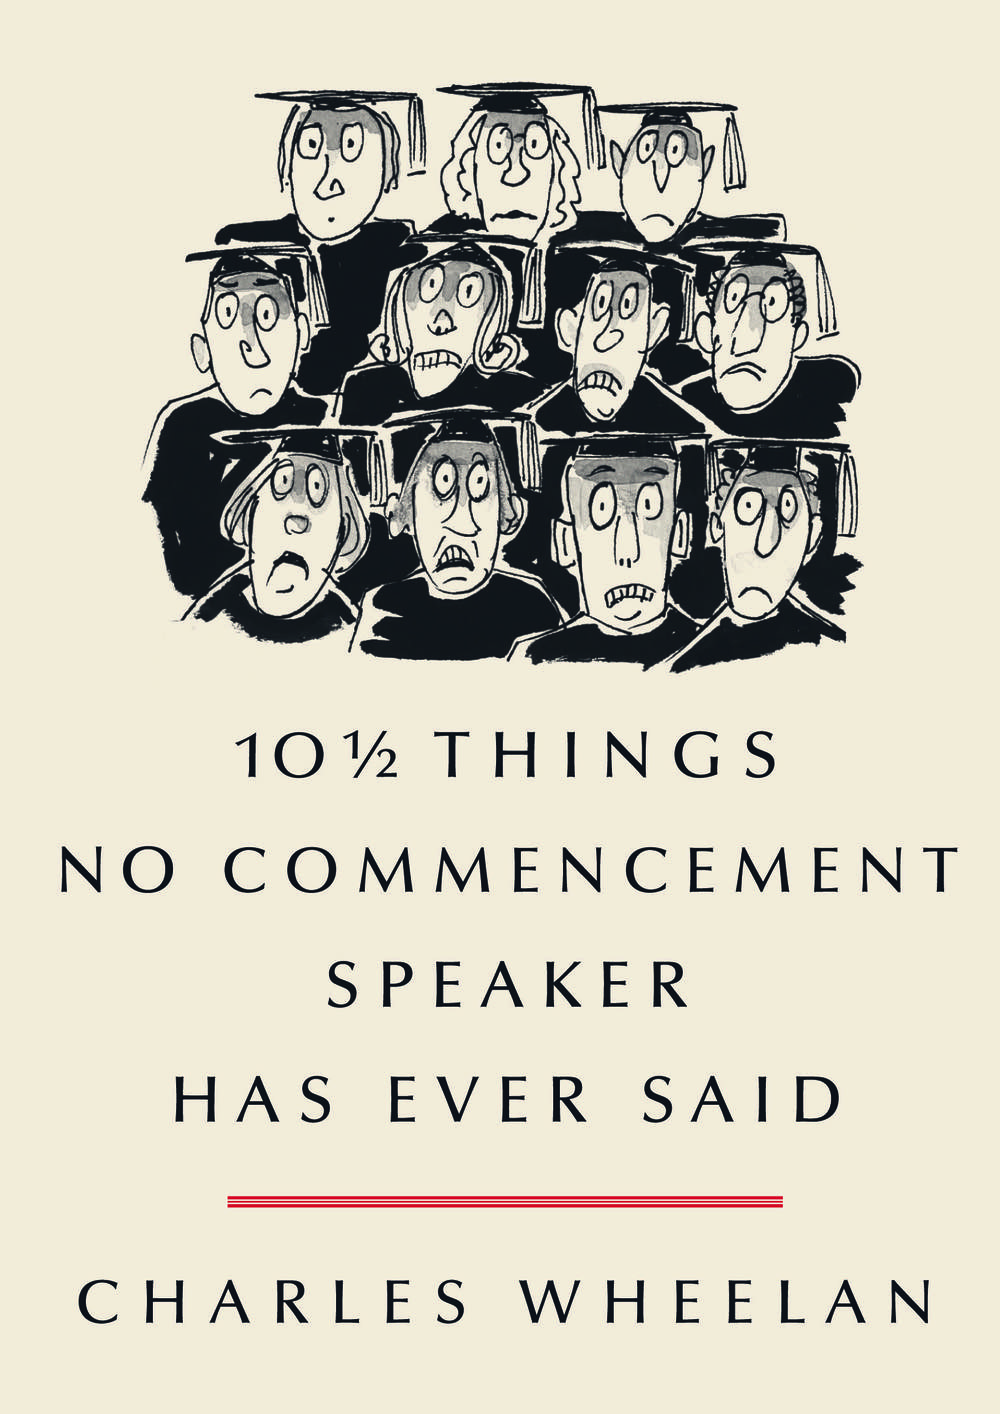 '10 1/2 Things No Commencement Speaker Has Ever..'